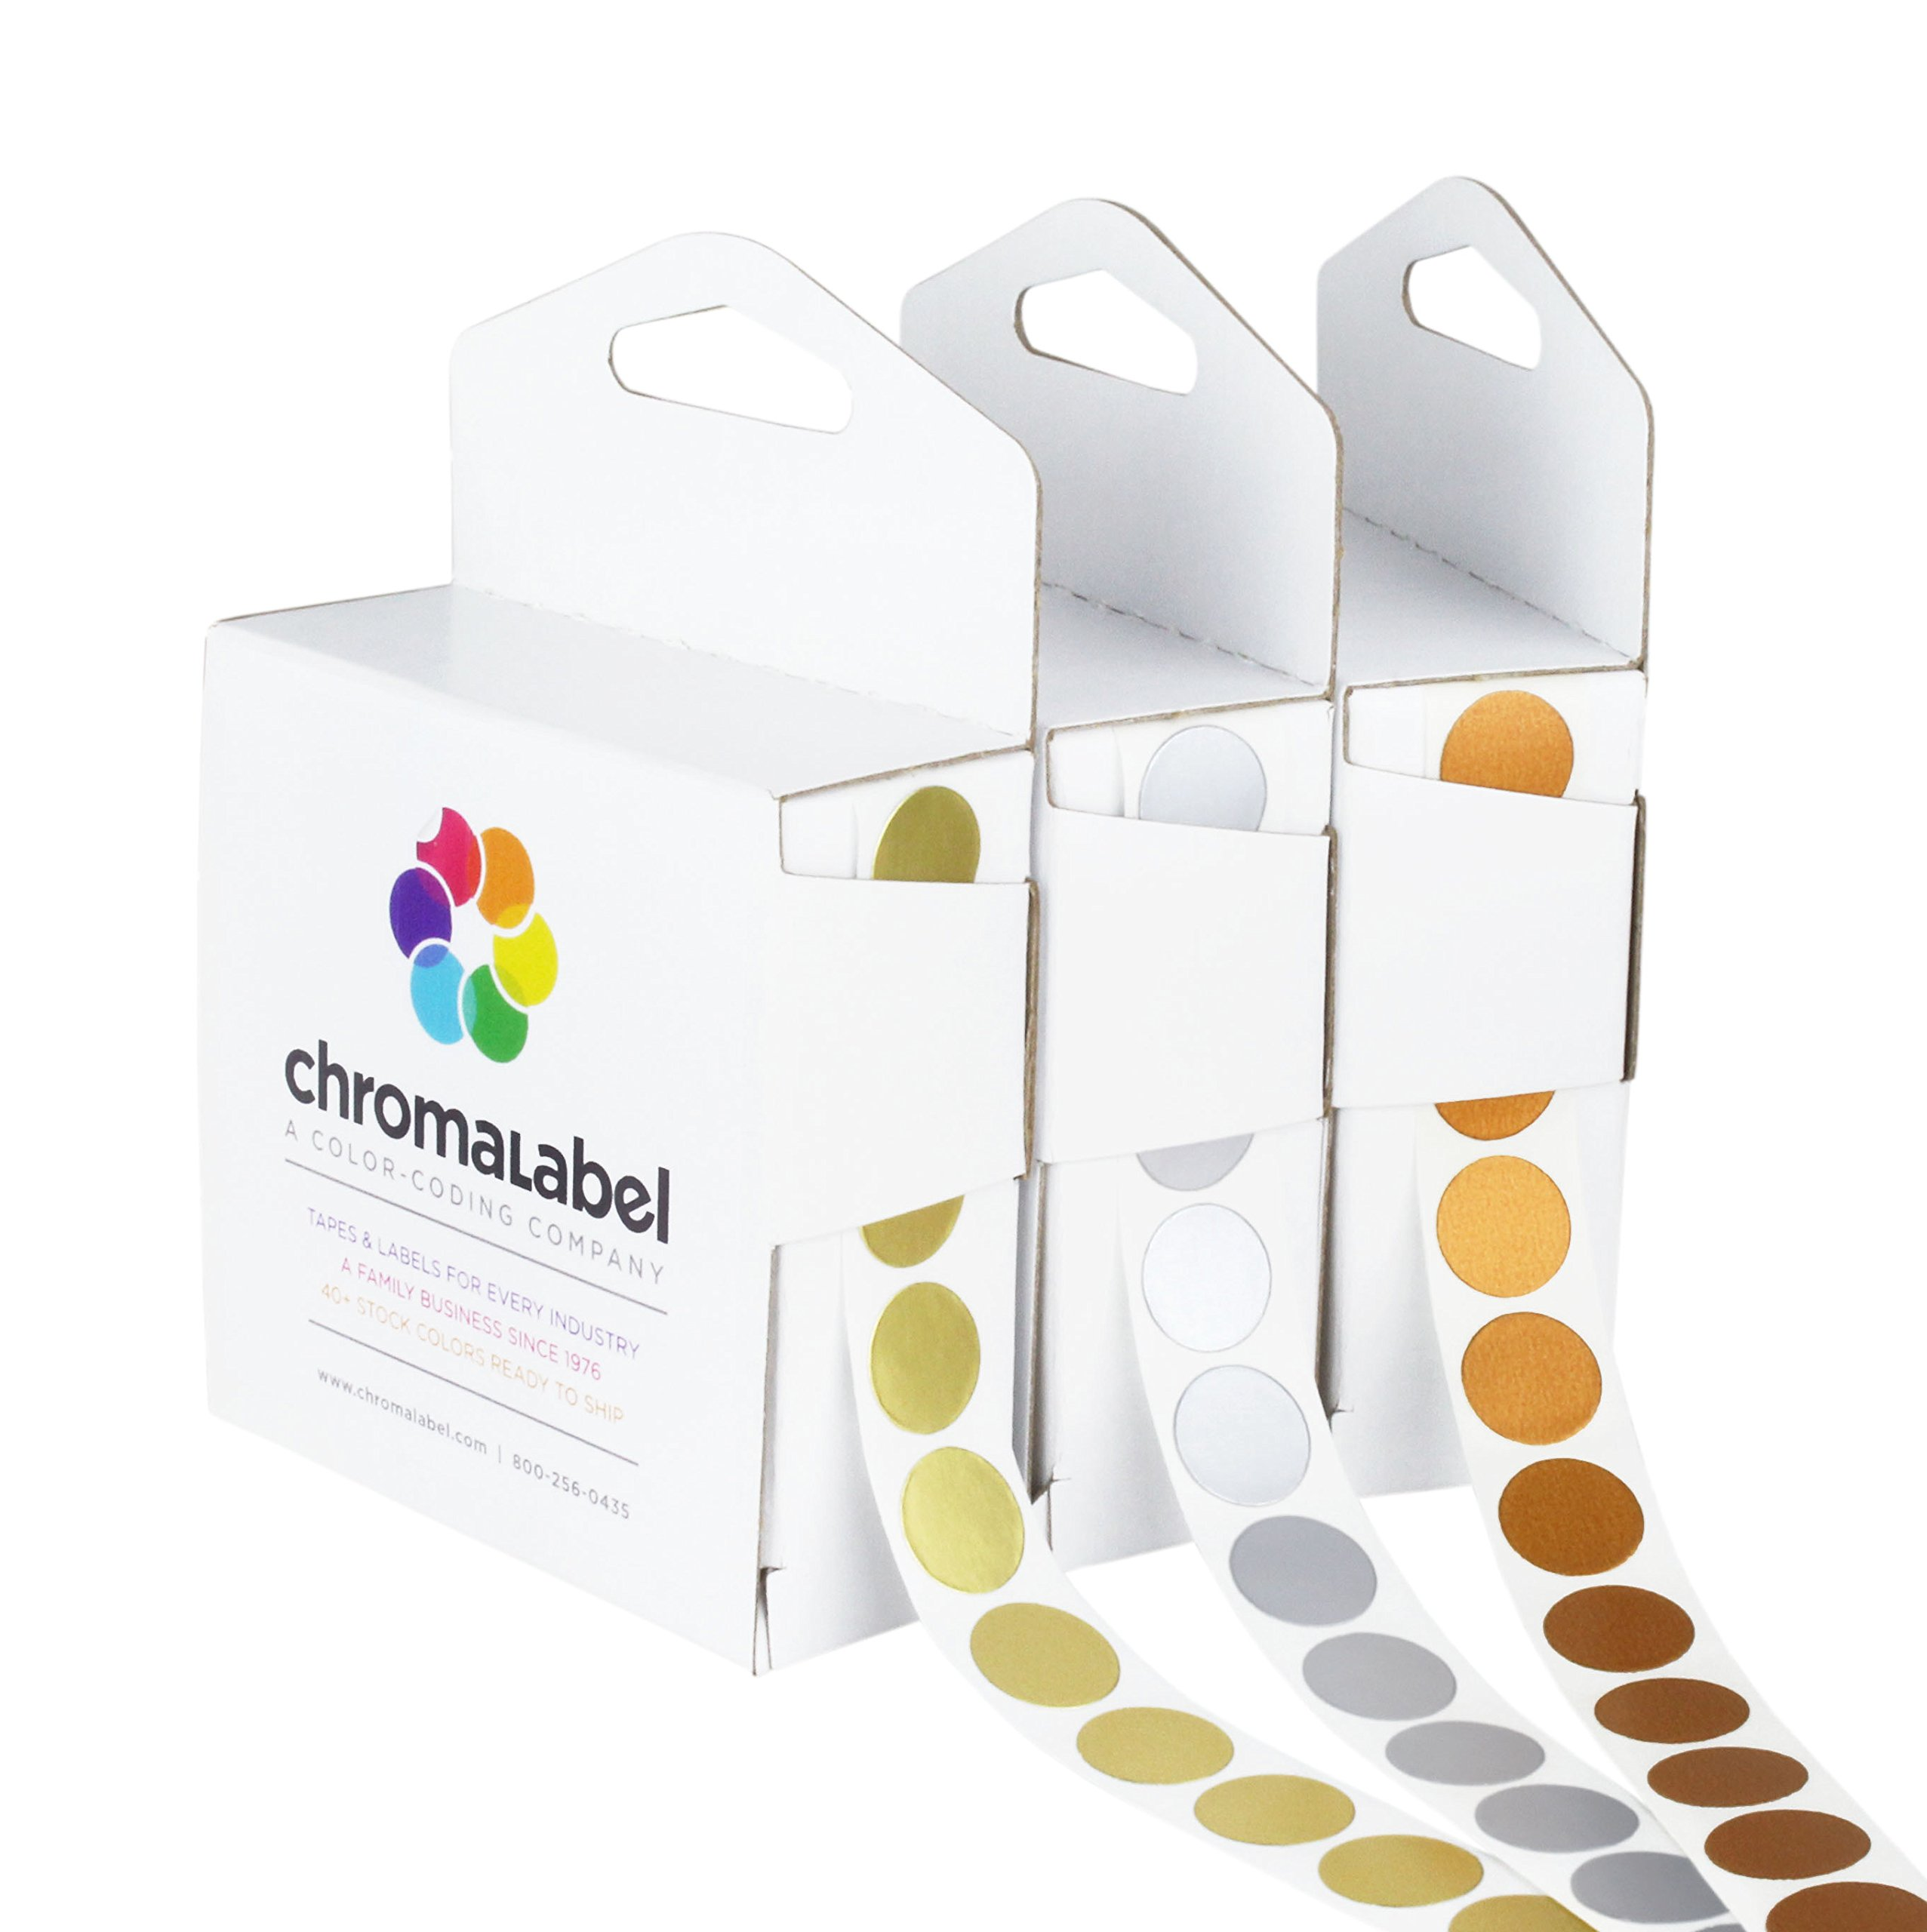 ChromaLabel Metallic Color-Code Dot Label Kit | Assorted Gold, Silver, Bronze | 1,000/Dispenser Box (1/2 inch) by ChromaLabel (Image #1)